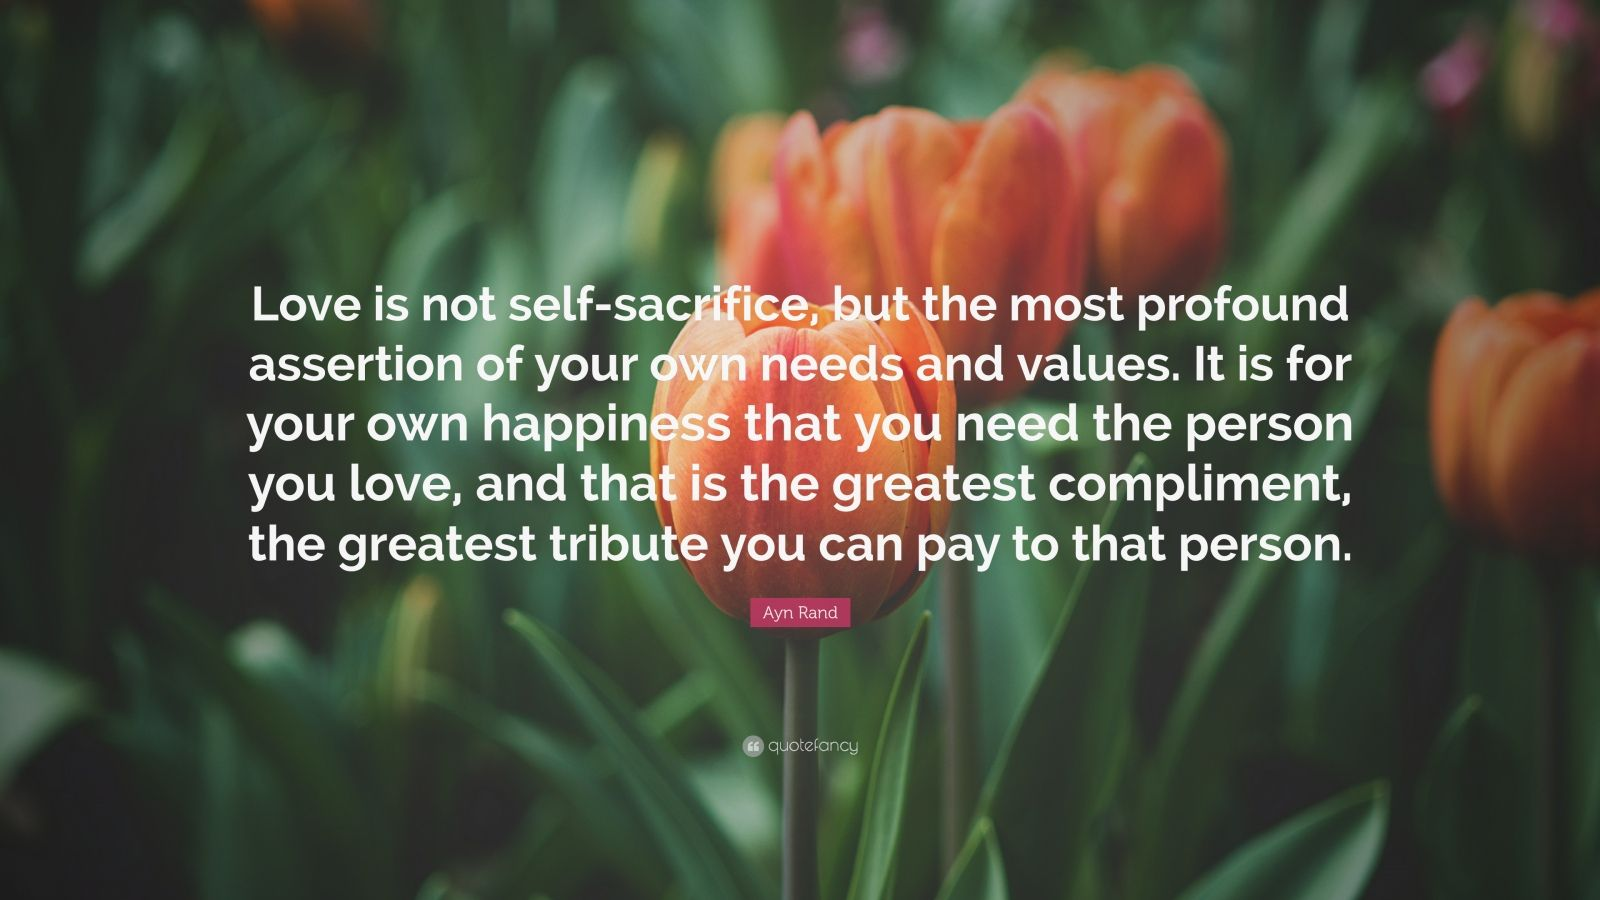 """Ayn Rand Quote: """"Love is not self-sacrifice, but the most profound assertion of your own needs and values. It is for your own happiness that you need the person you love, and that is the greatest compliment, the greatest tribute you can pay to that person."""""""